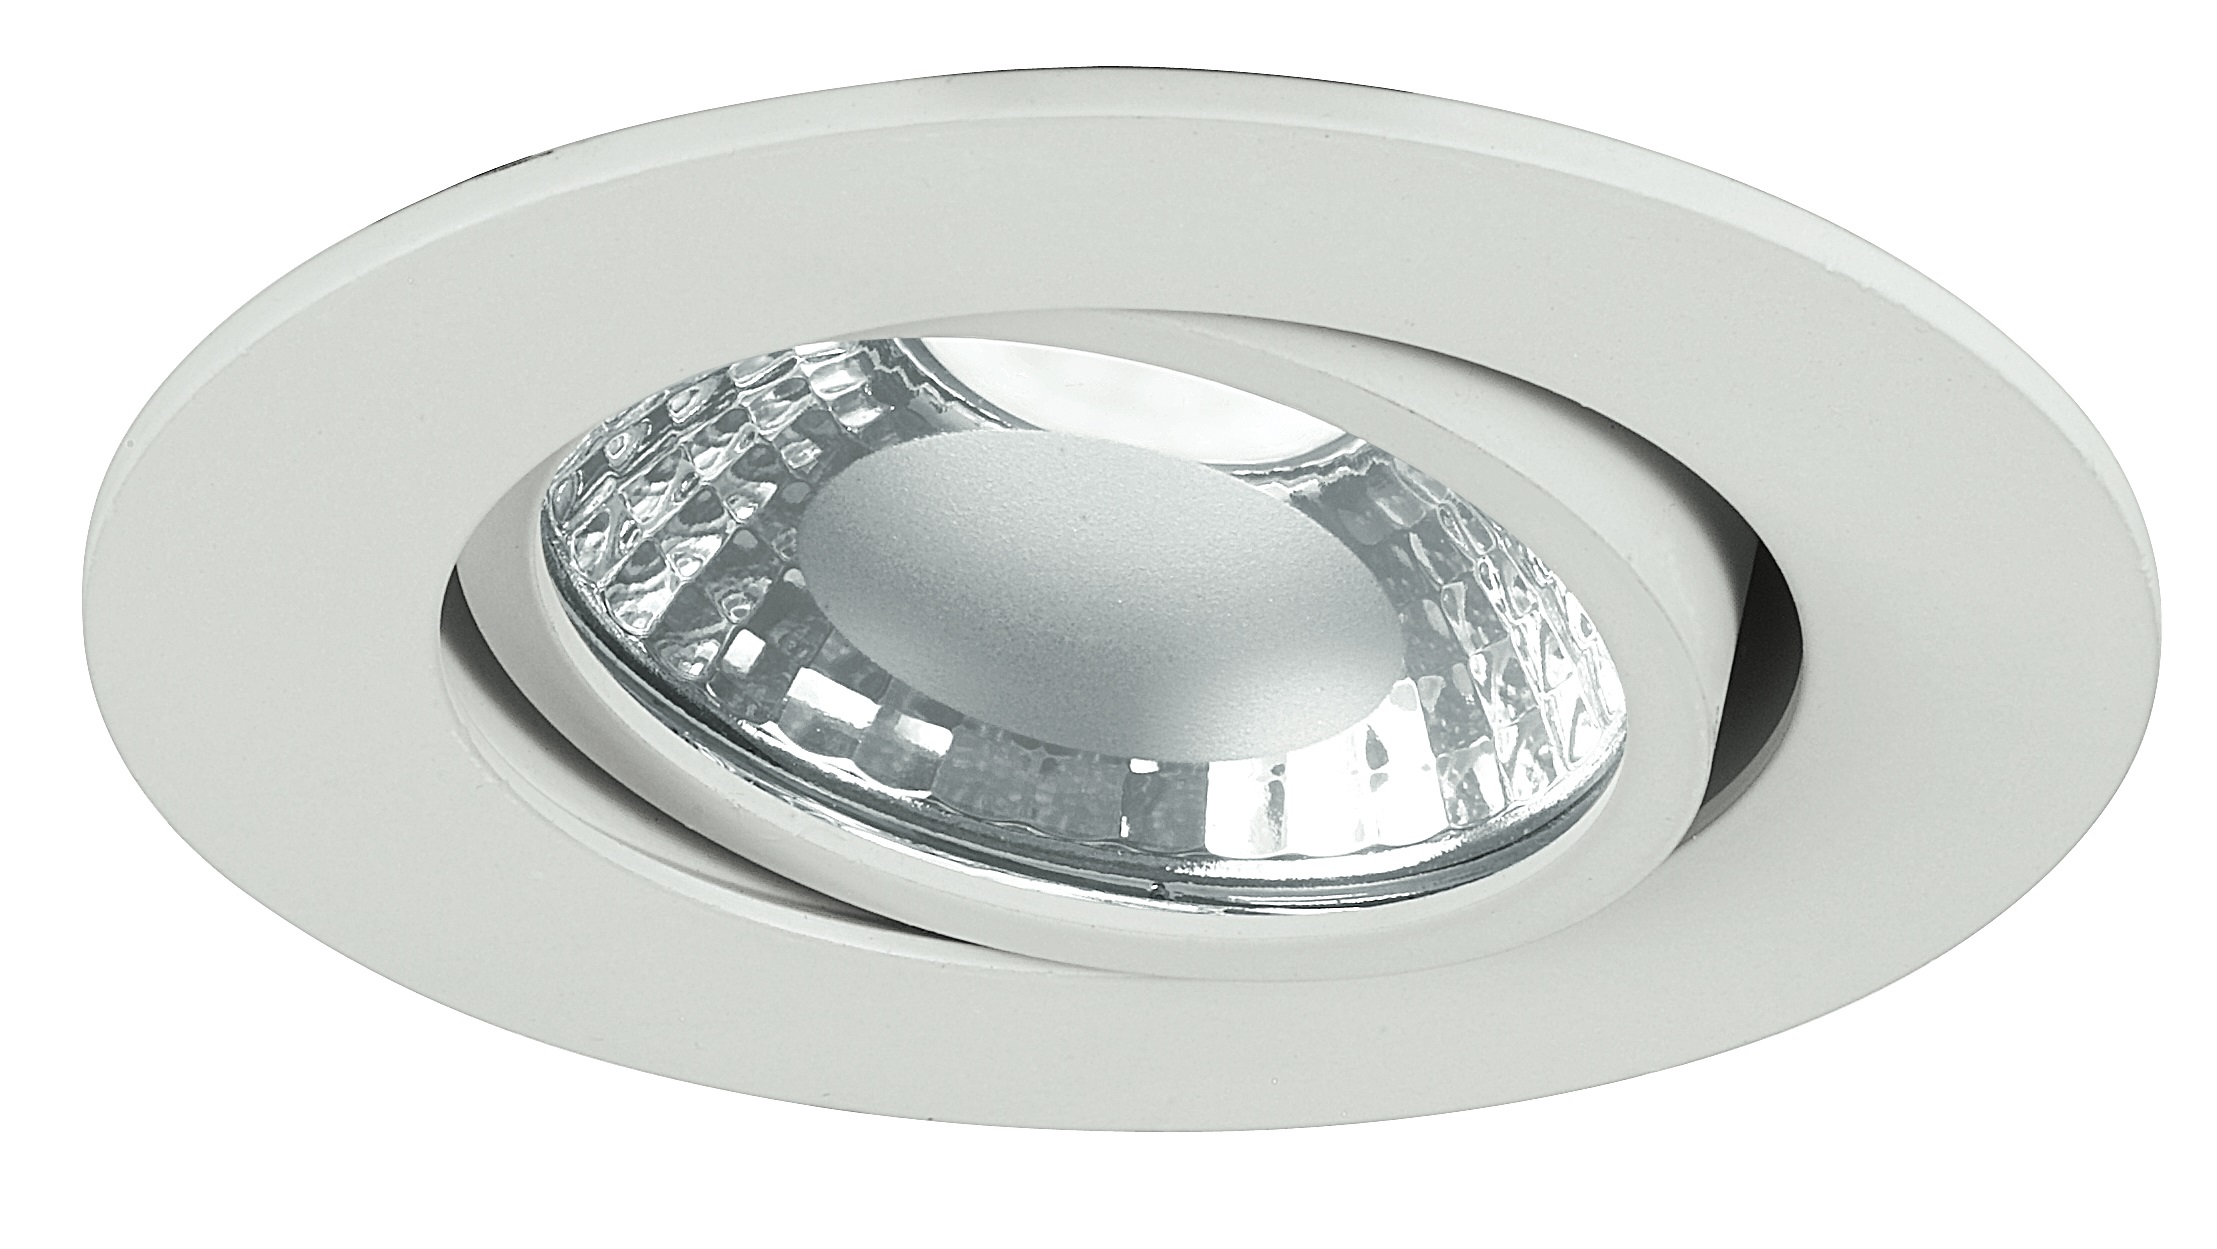 Plafoniera Led Incasso Tonda : Inc orione r6 bco 8031429771167 fan europe lighting faretto a